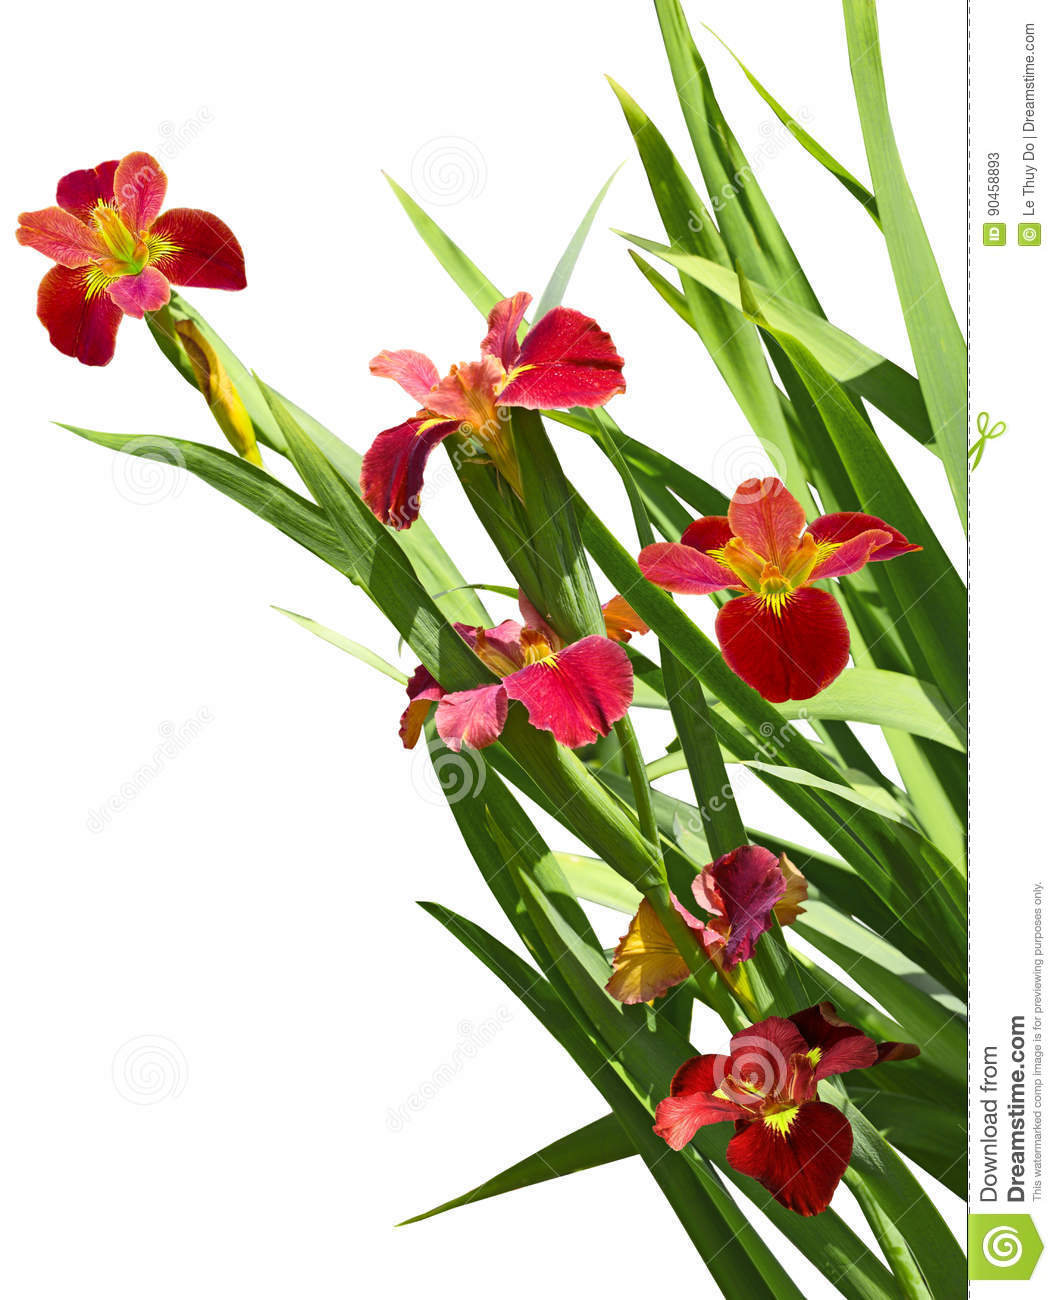 Red iris flower stock image image of bright spring 90458893 download comp izmirmasajfo